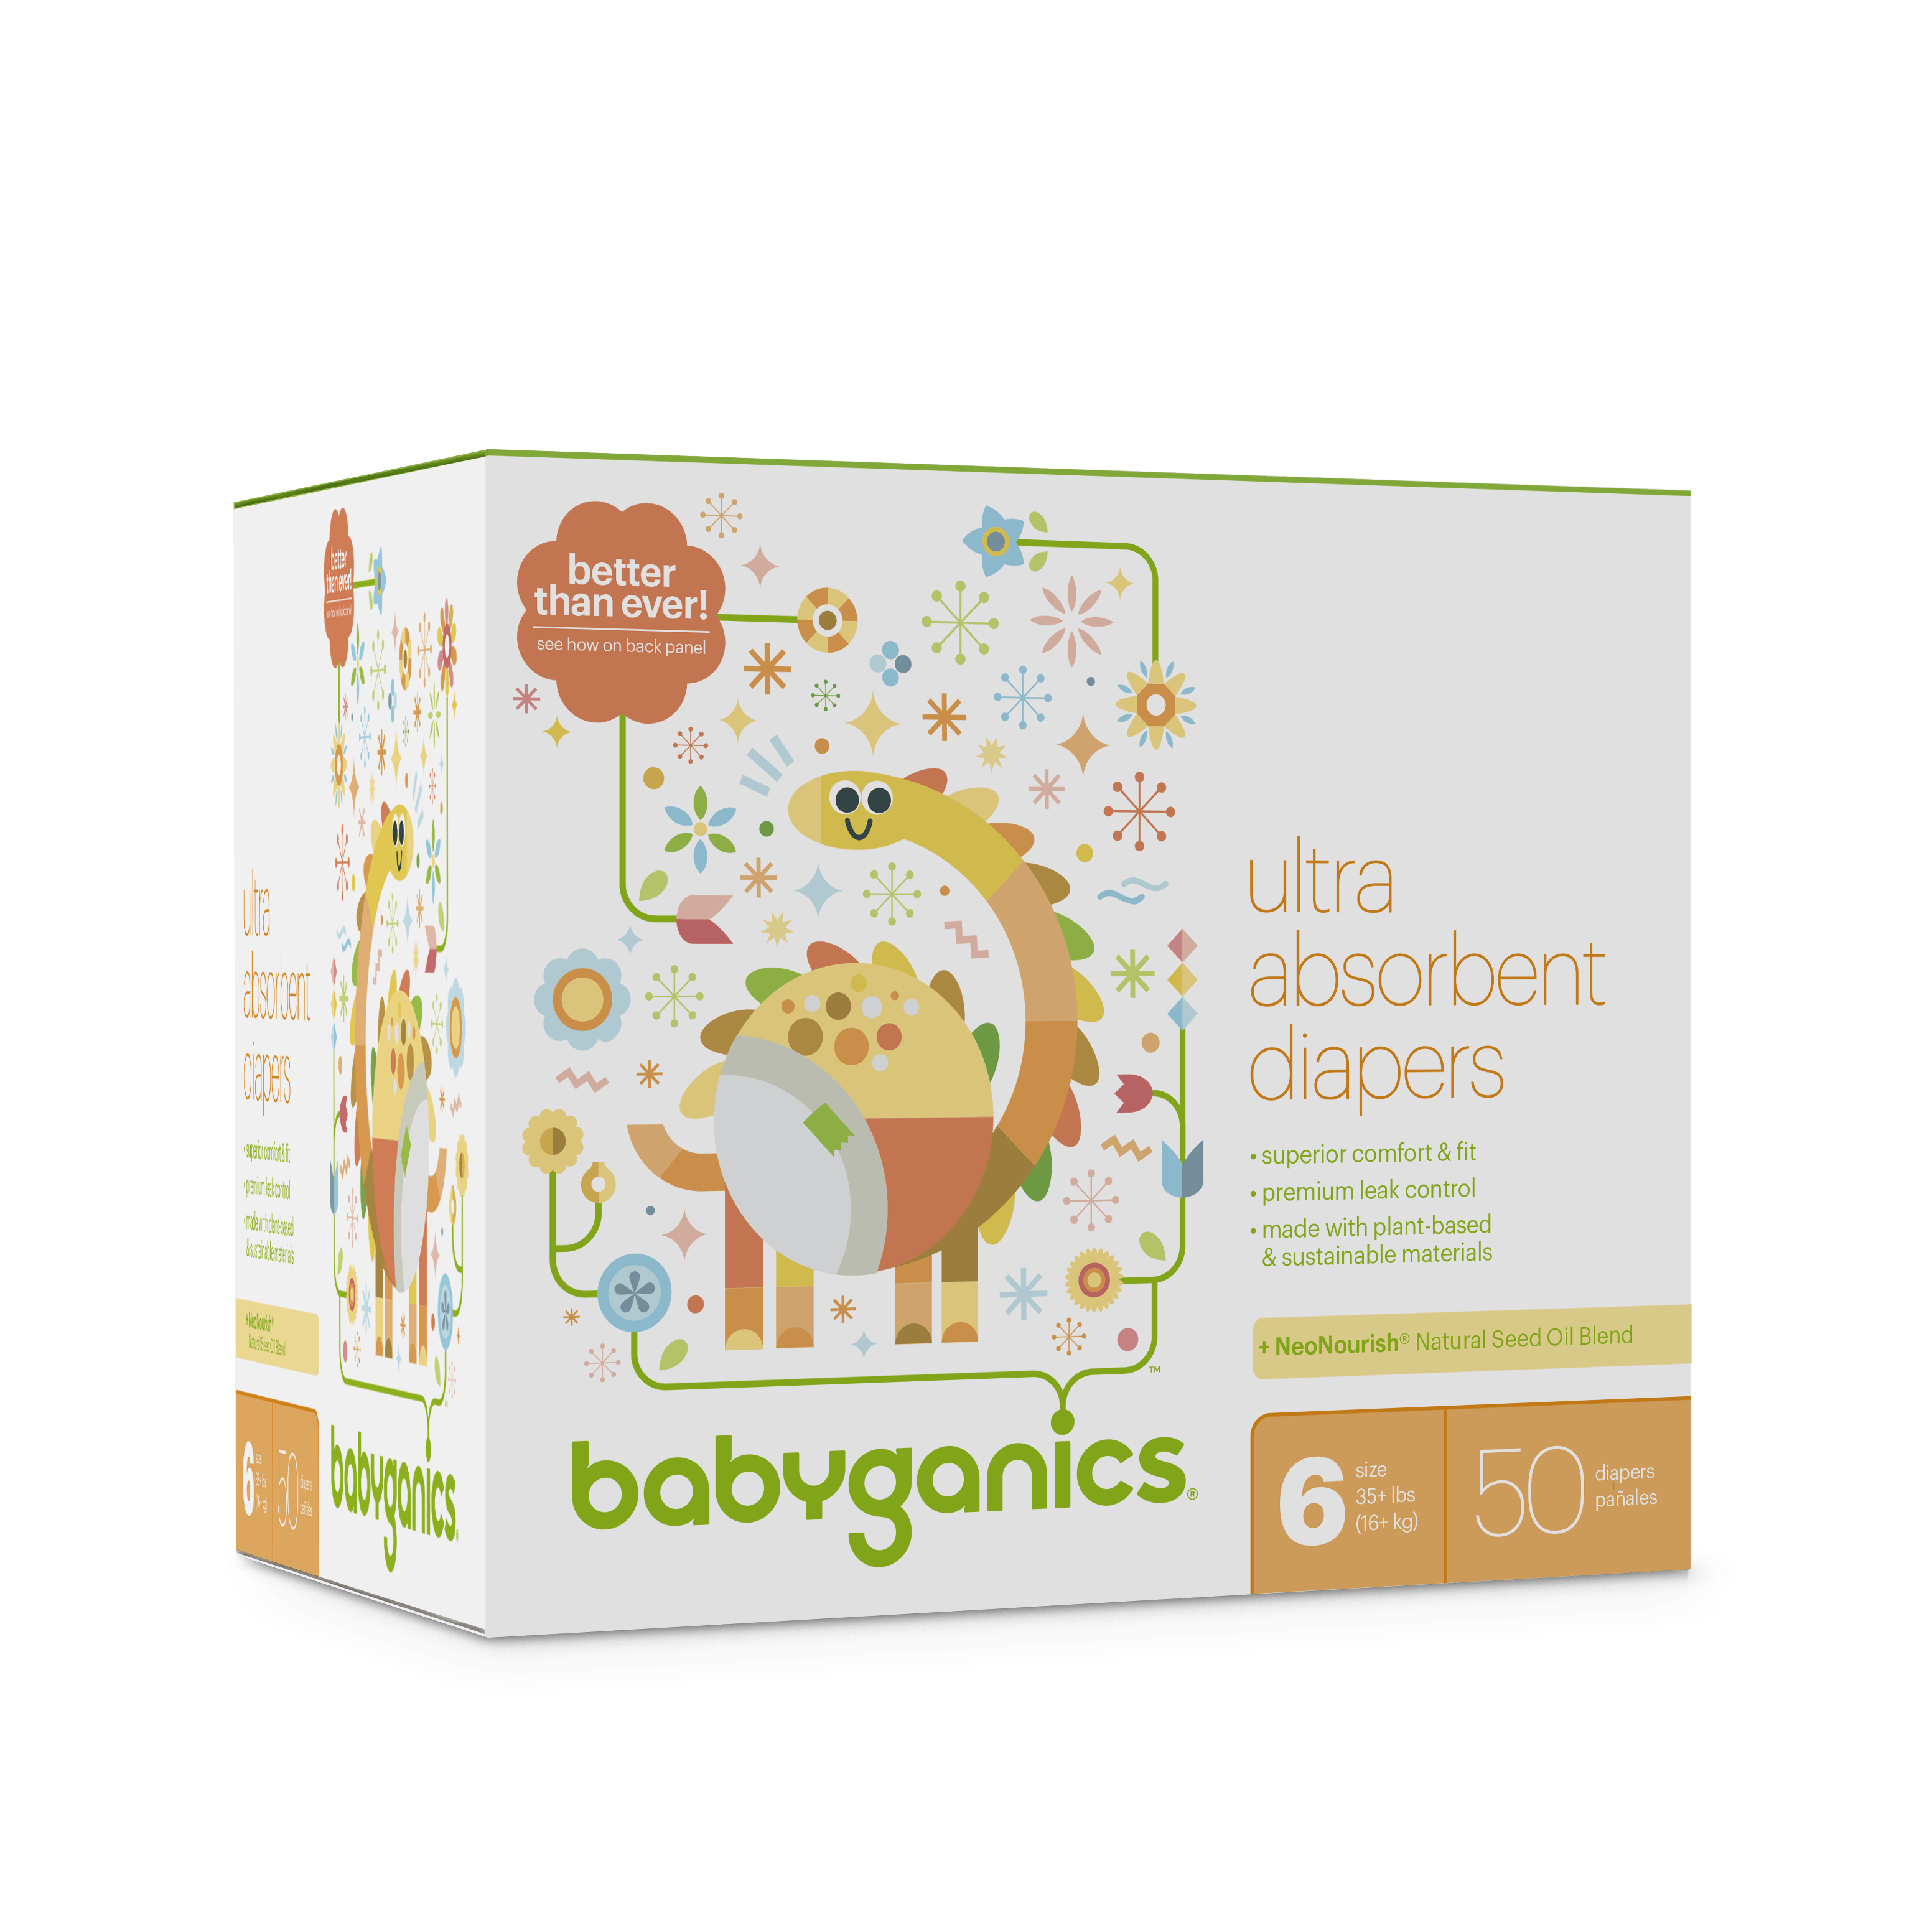 Babyganics Ultra Absorbent Diapers, Size 6, 50 Diapers